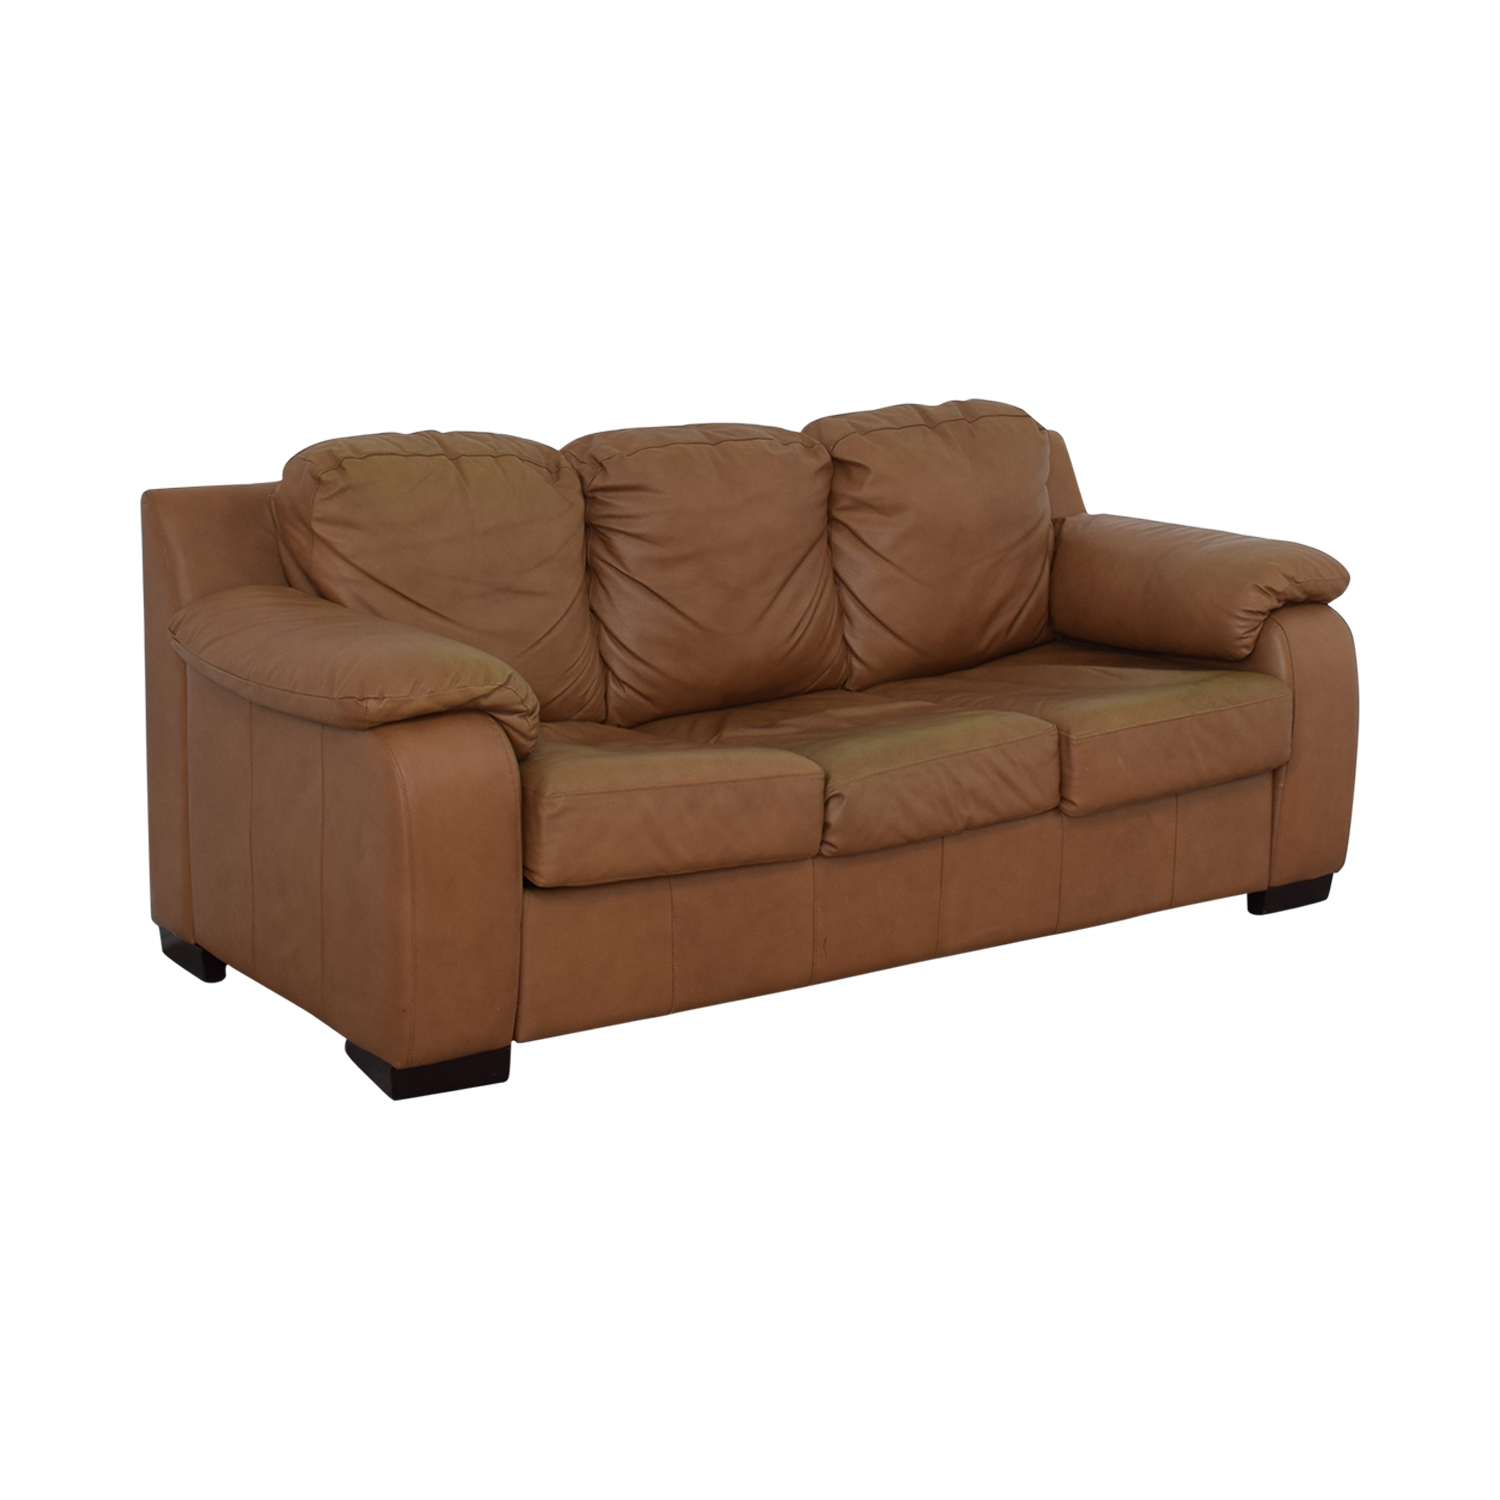 Jennifer Convertibles Cognac Three-Cushion Sofa with Pull-Out Full Convertible sale